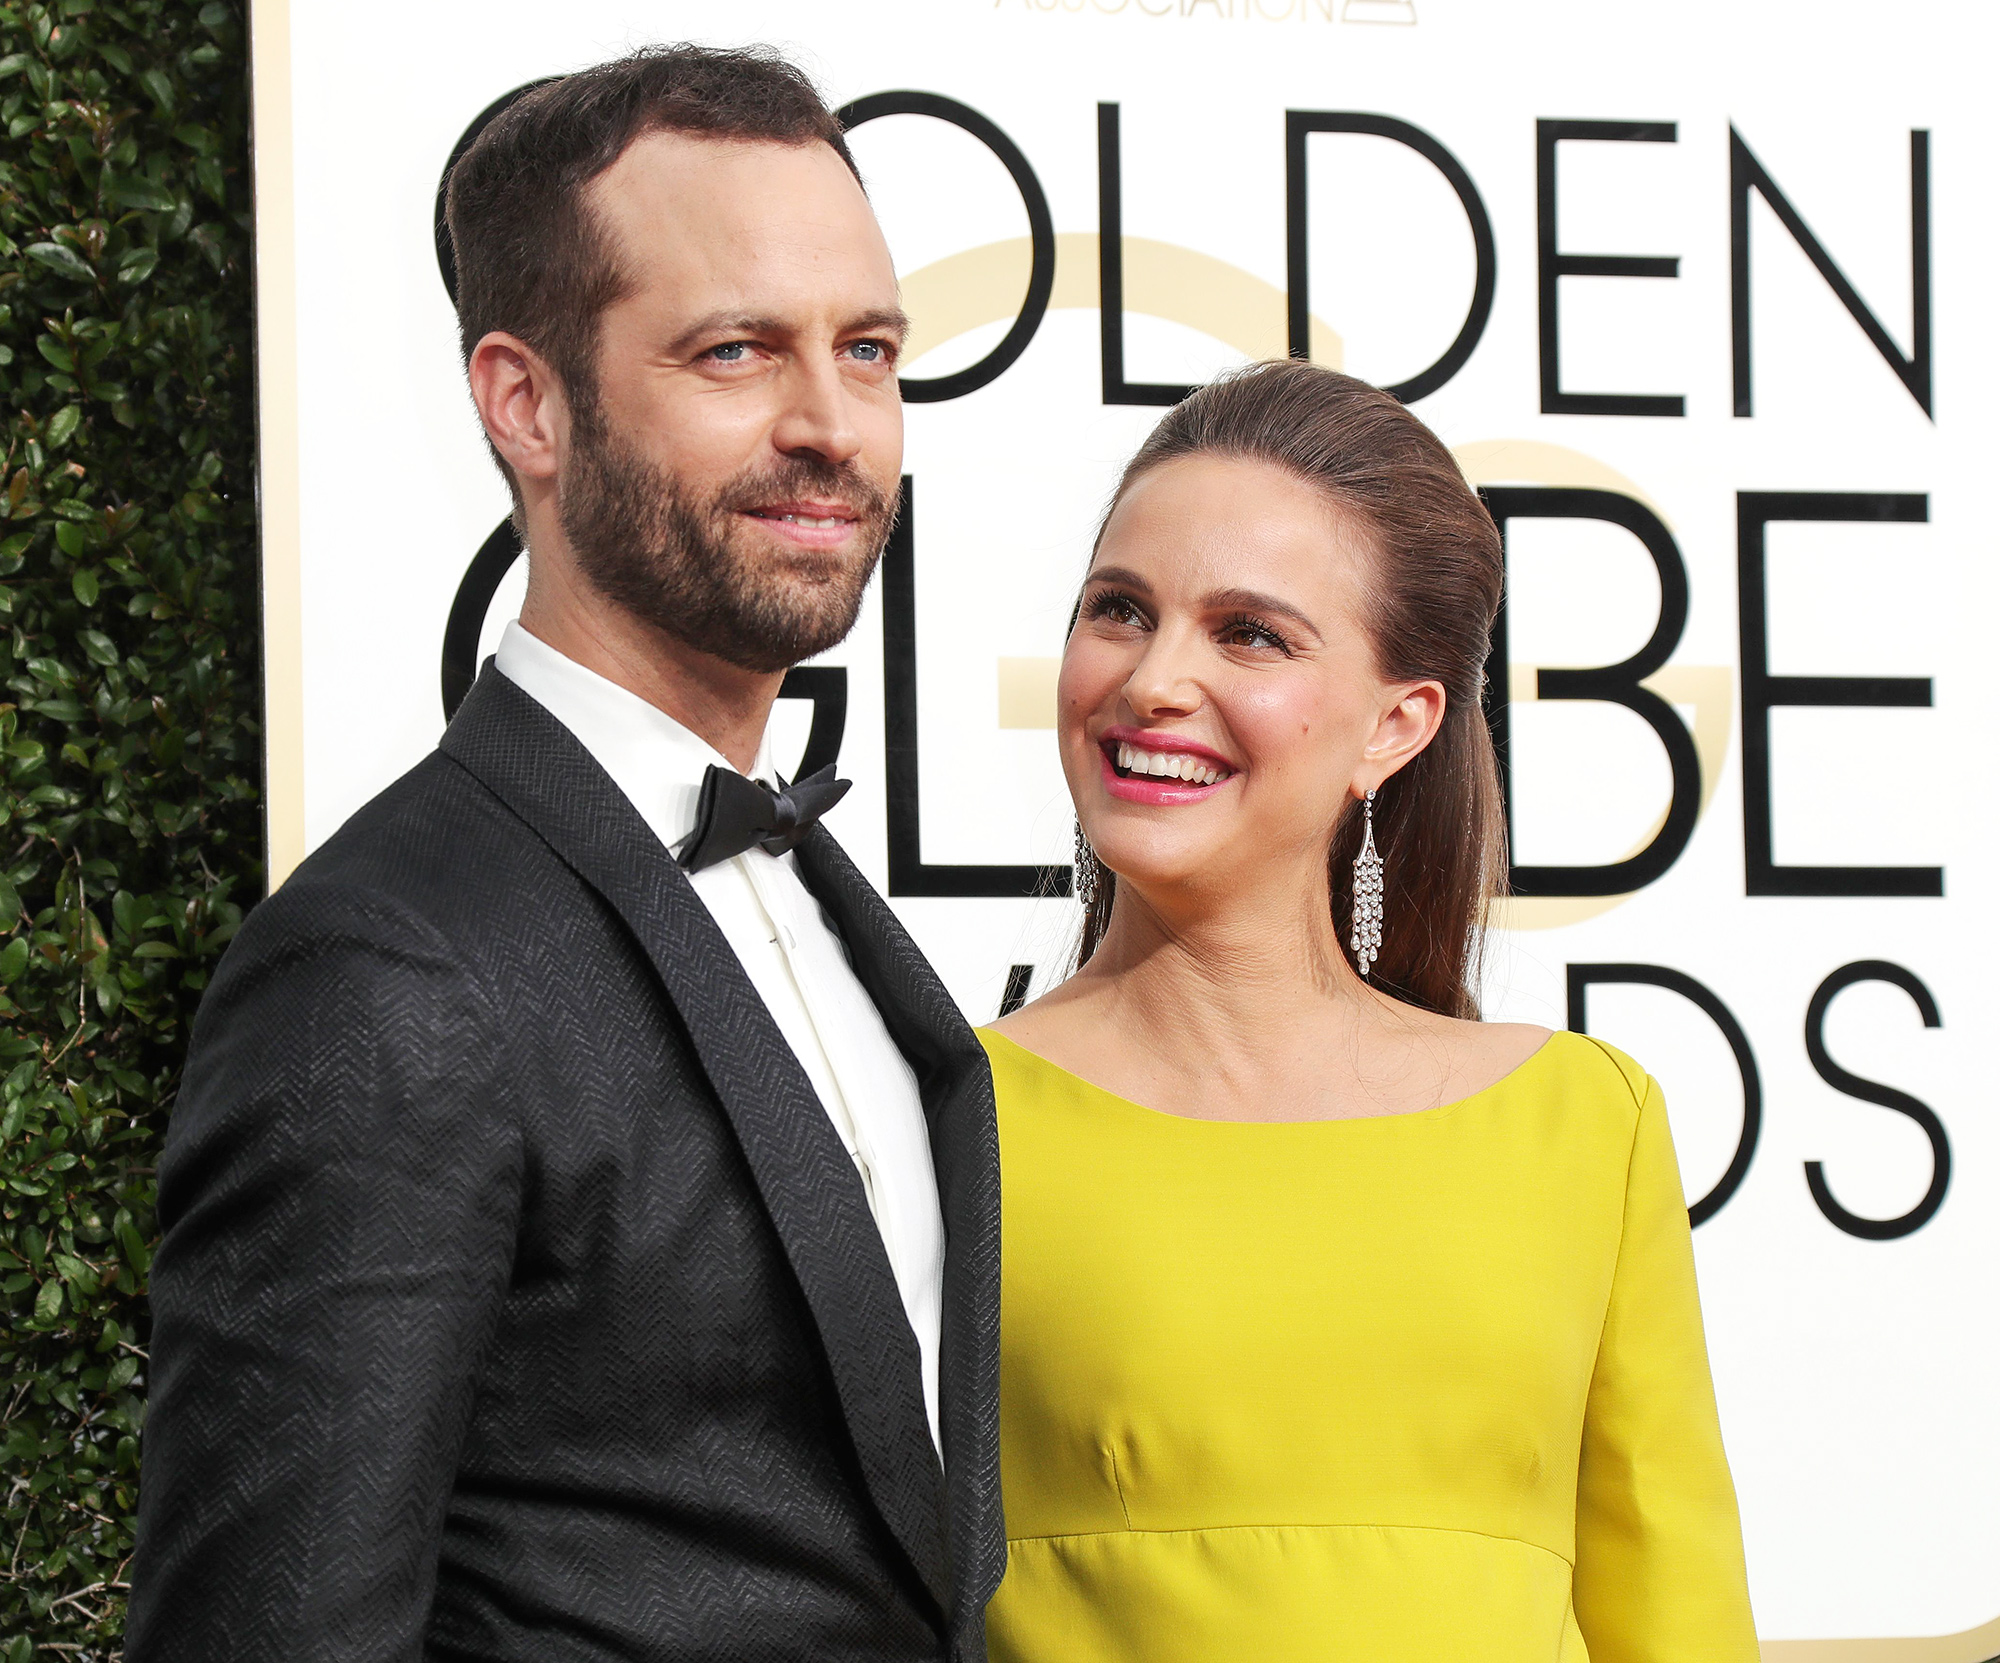 Mandatory Credit: Photo by Jim Smeal/BEI/Shutterstock (7734775dx) Benjamin Millepeid and Natalie Portman 74th Annual Golden Globe Awards, Arrivals, Los Angeles, USA - 08 Jan 2017